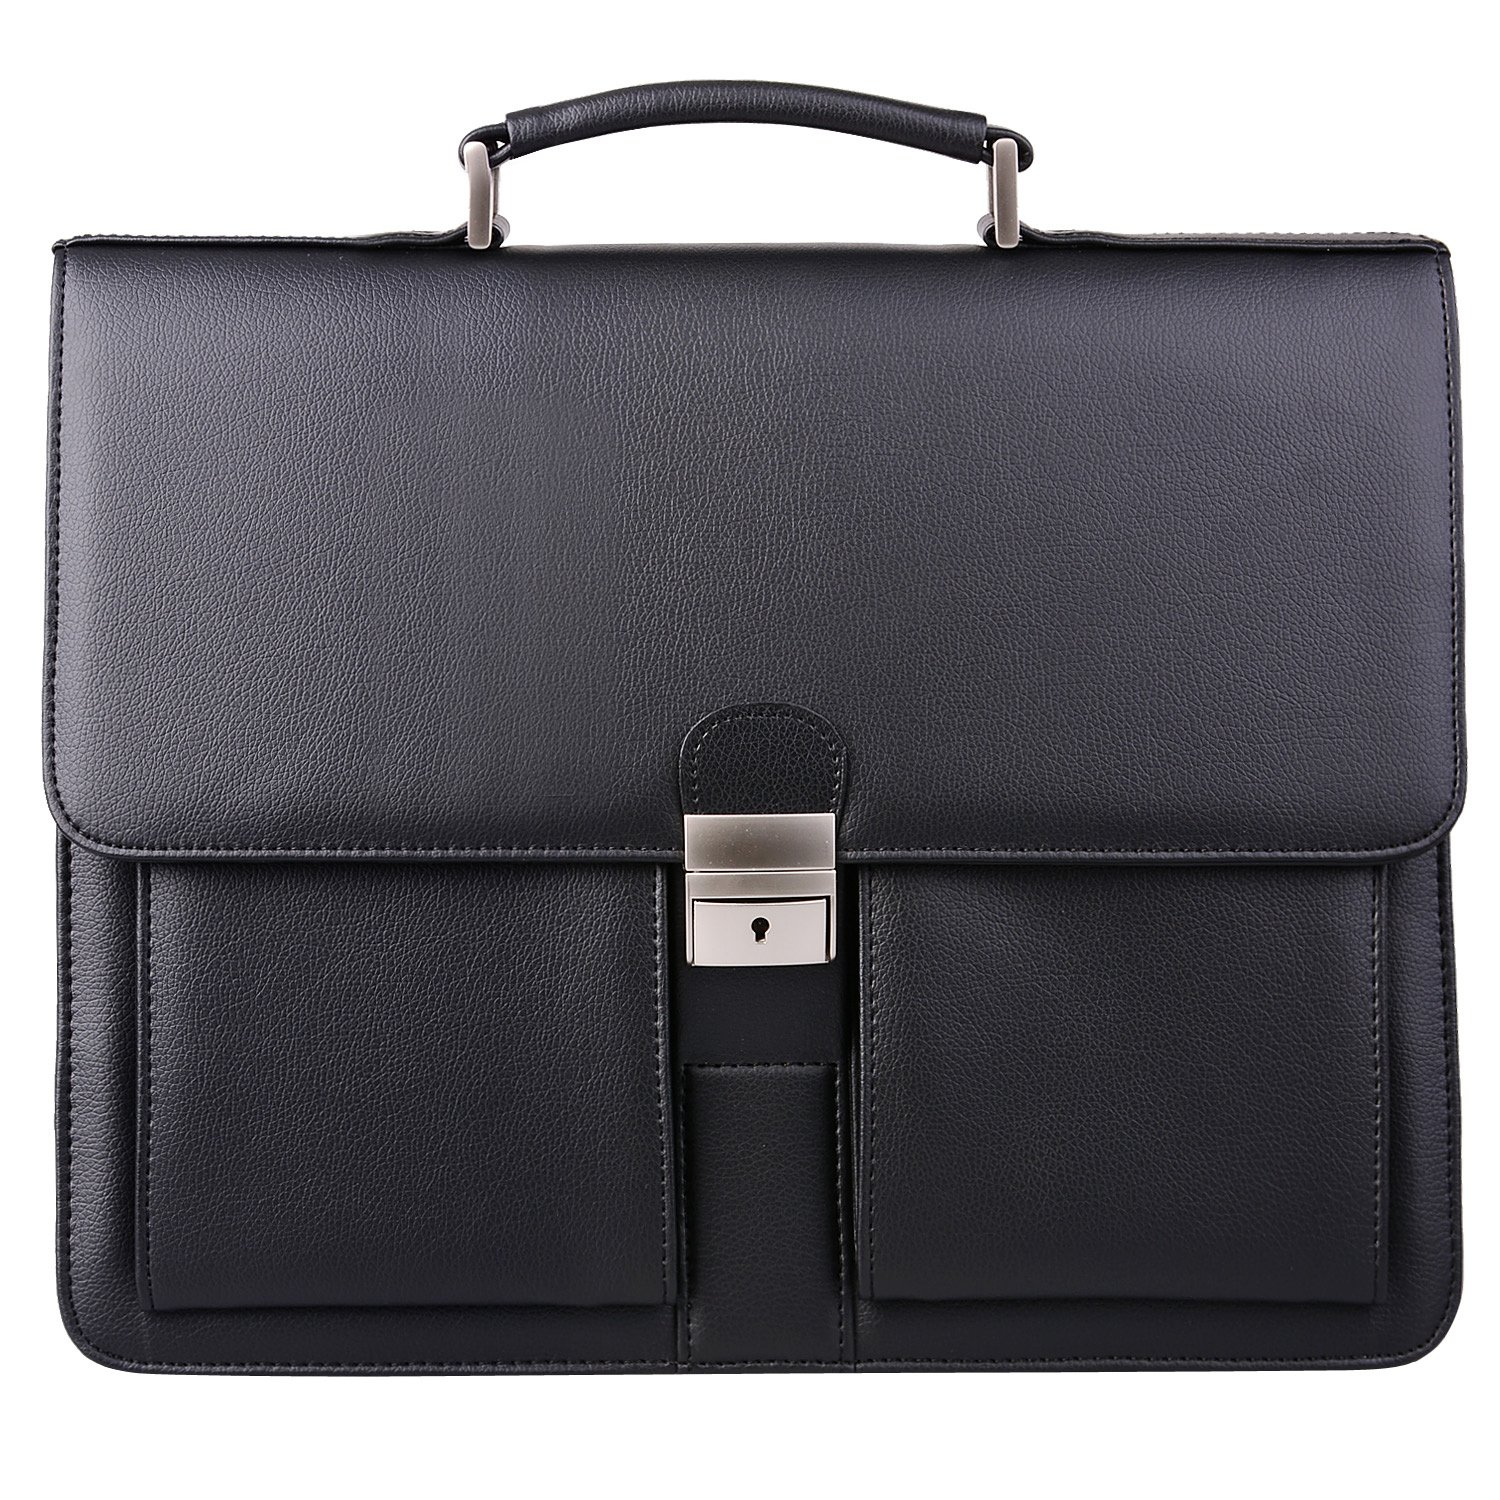 Jack&Chris Mens New PU Leather Briefcase Messenger Bag Laptop Bag, MBYX015 MBYX015 (Black)